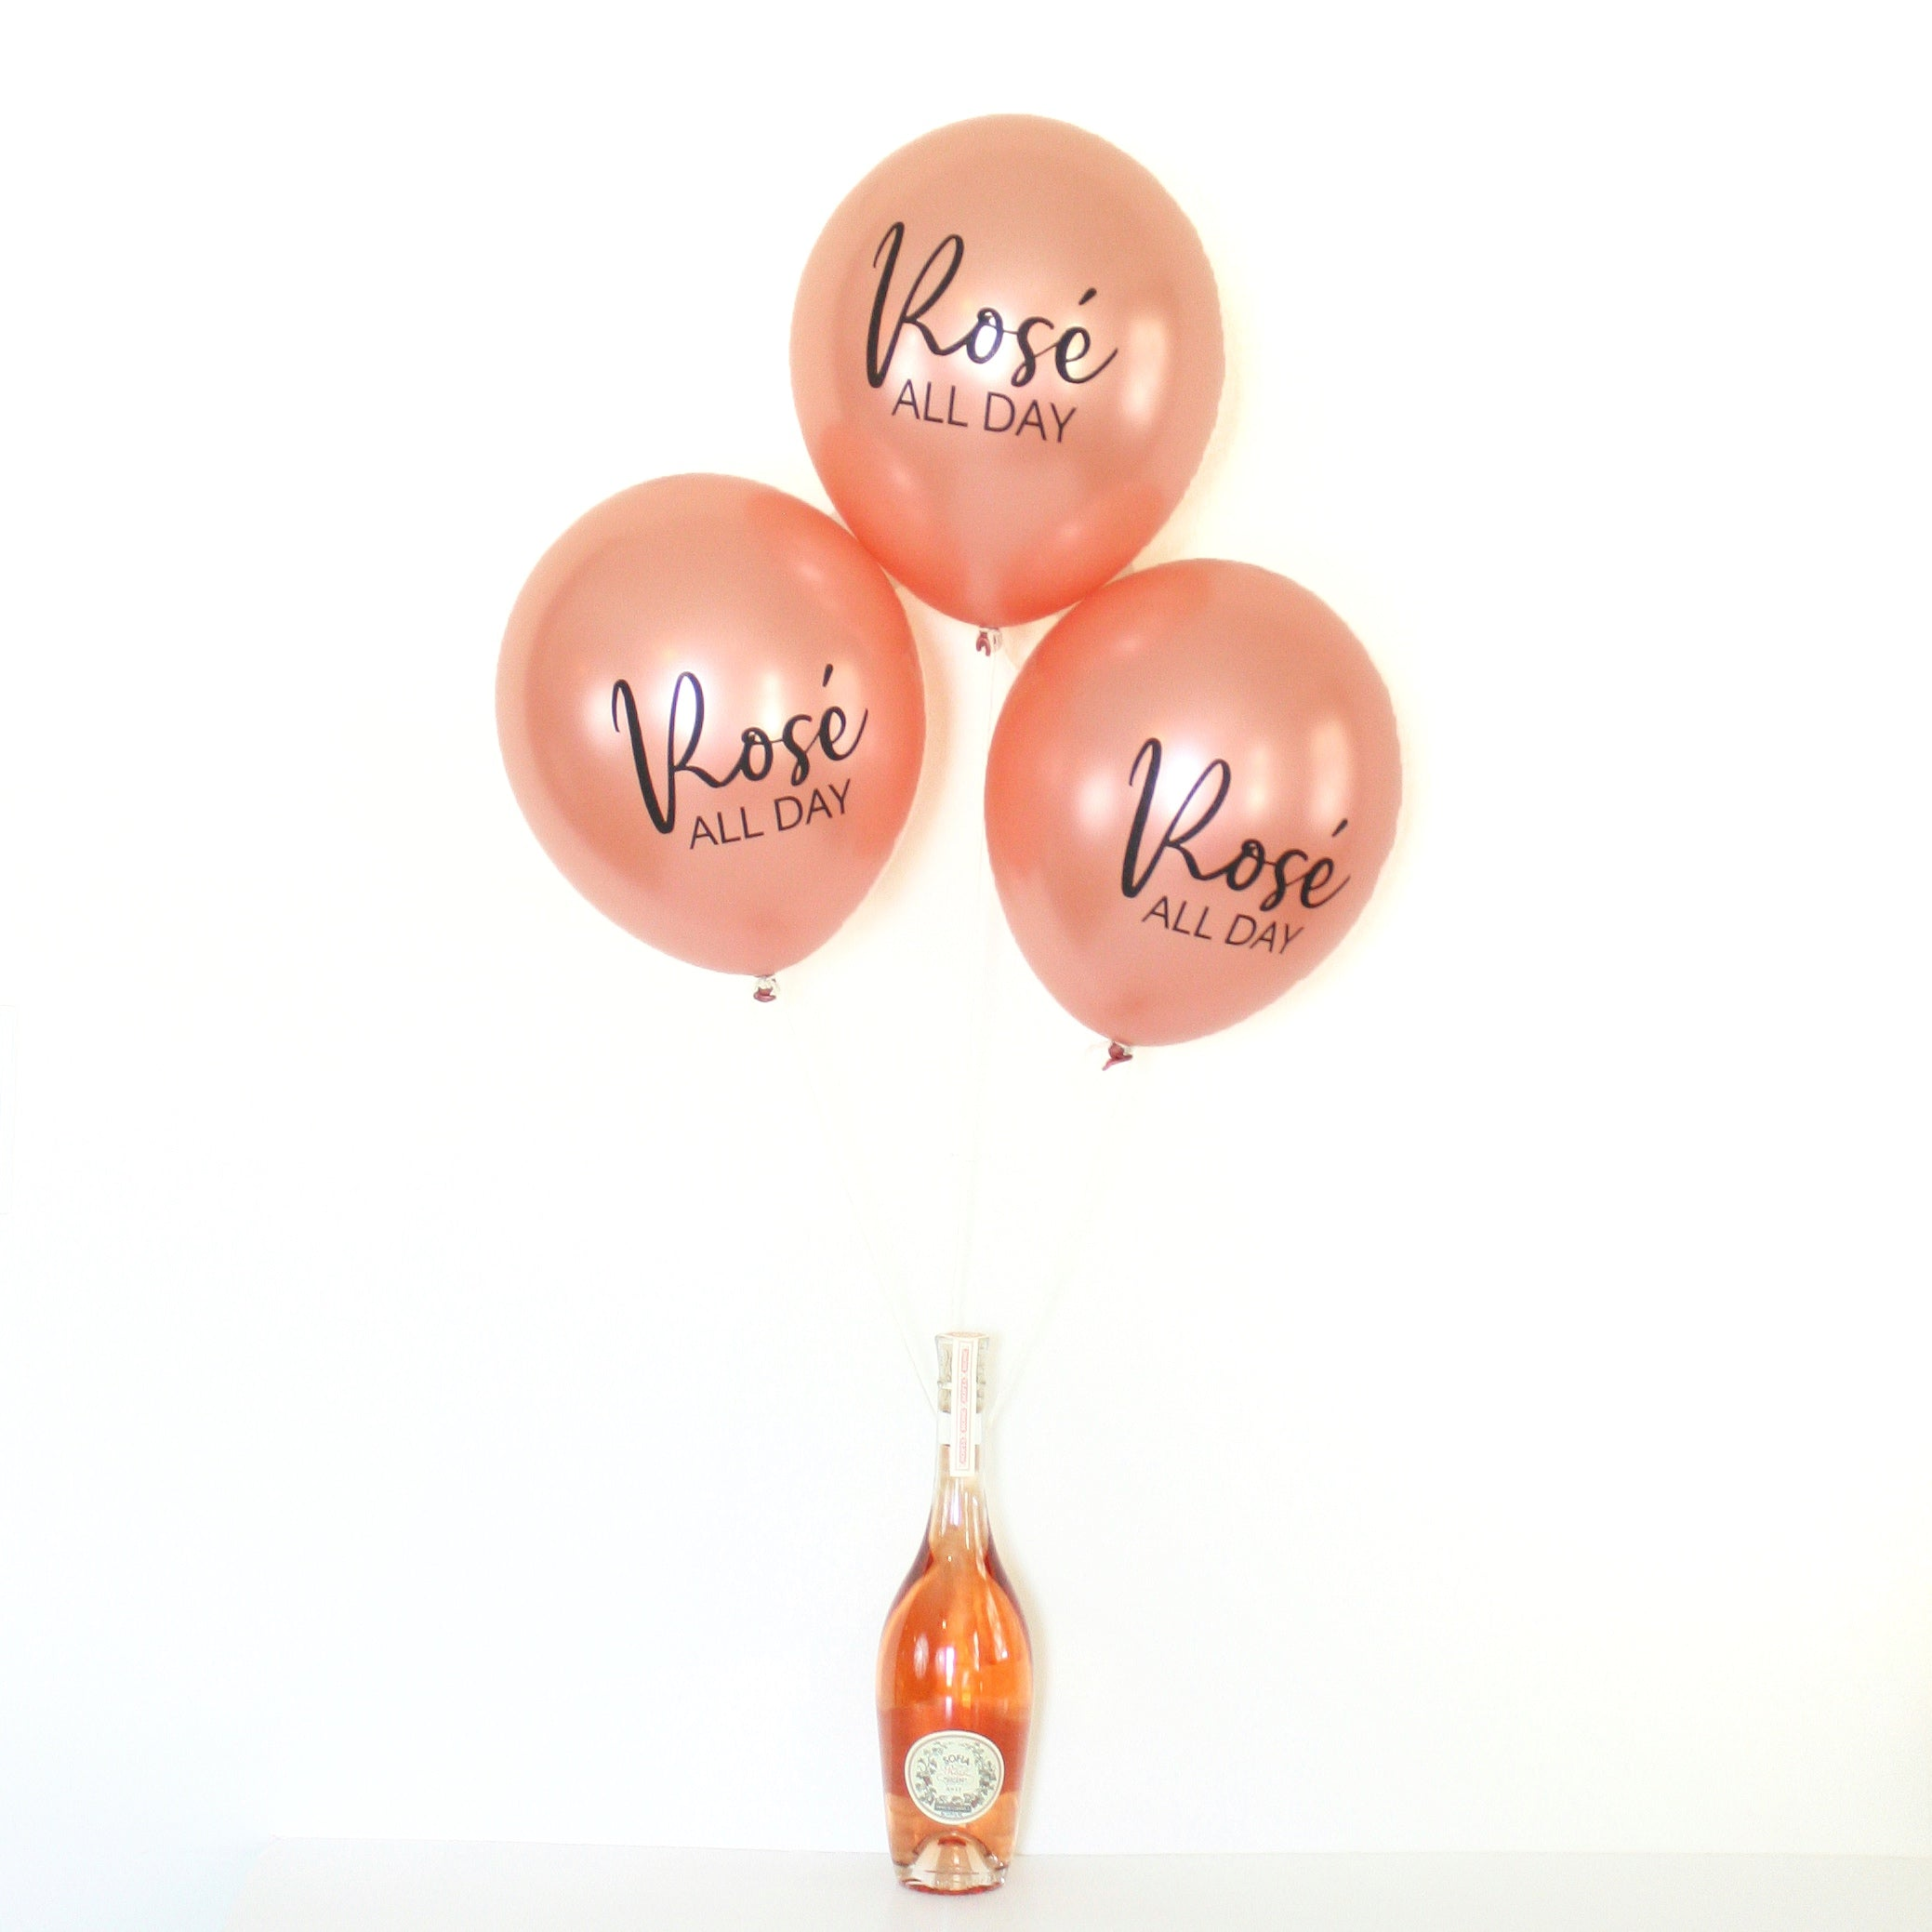 Rosé All Day - Hand Lettered Balloons